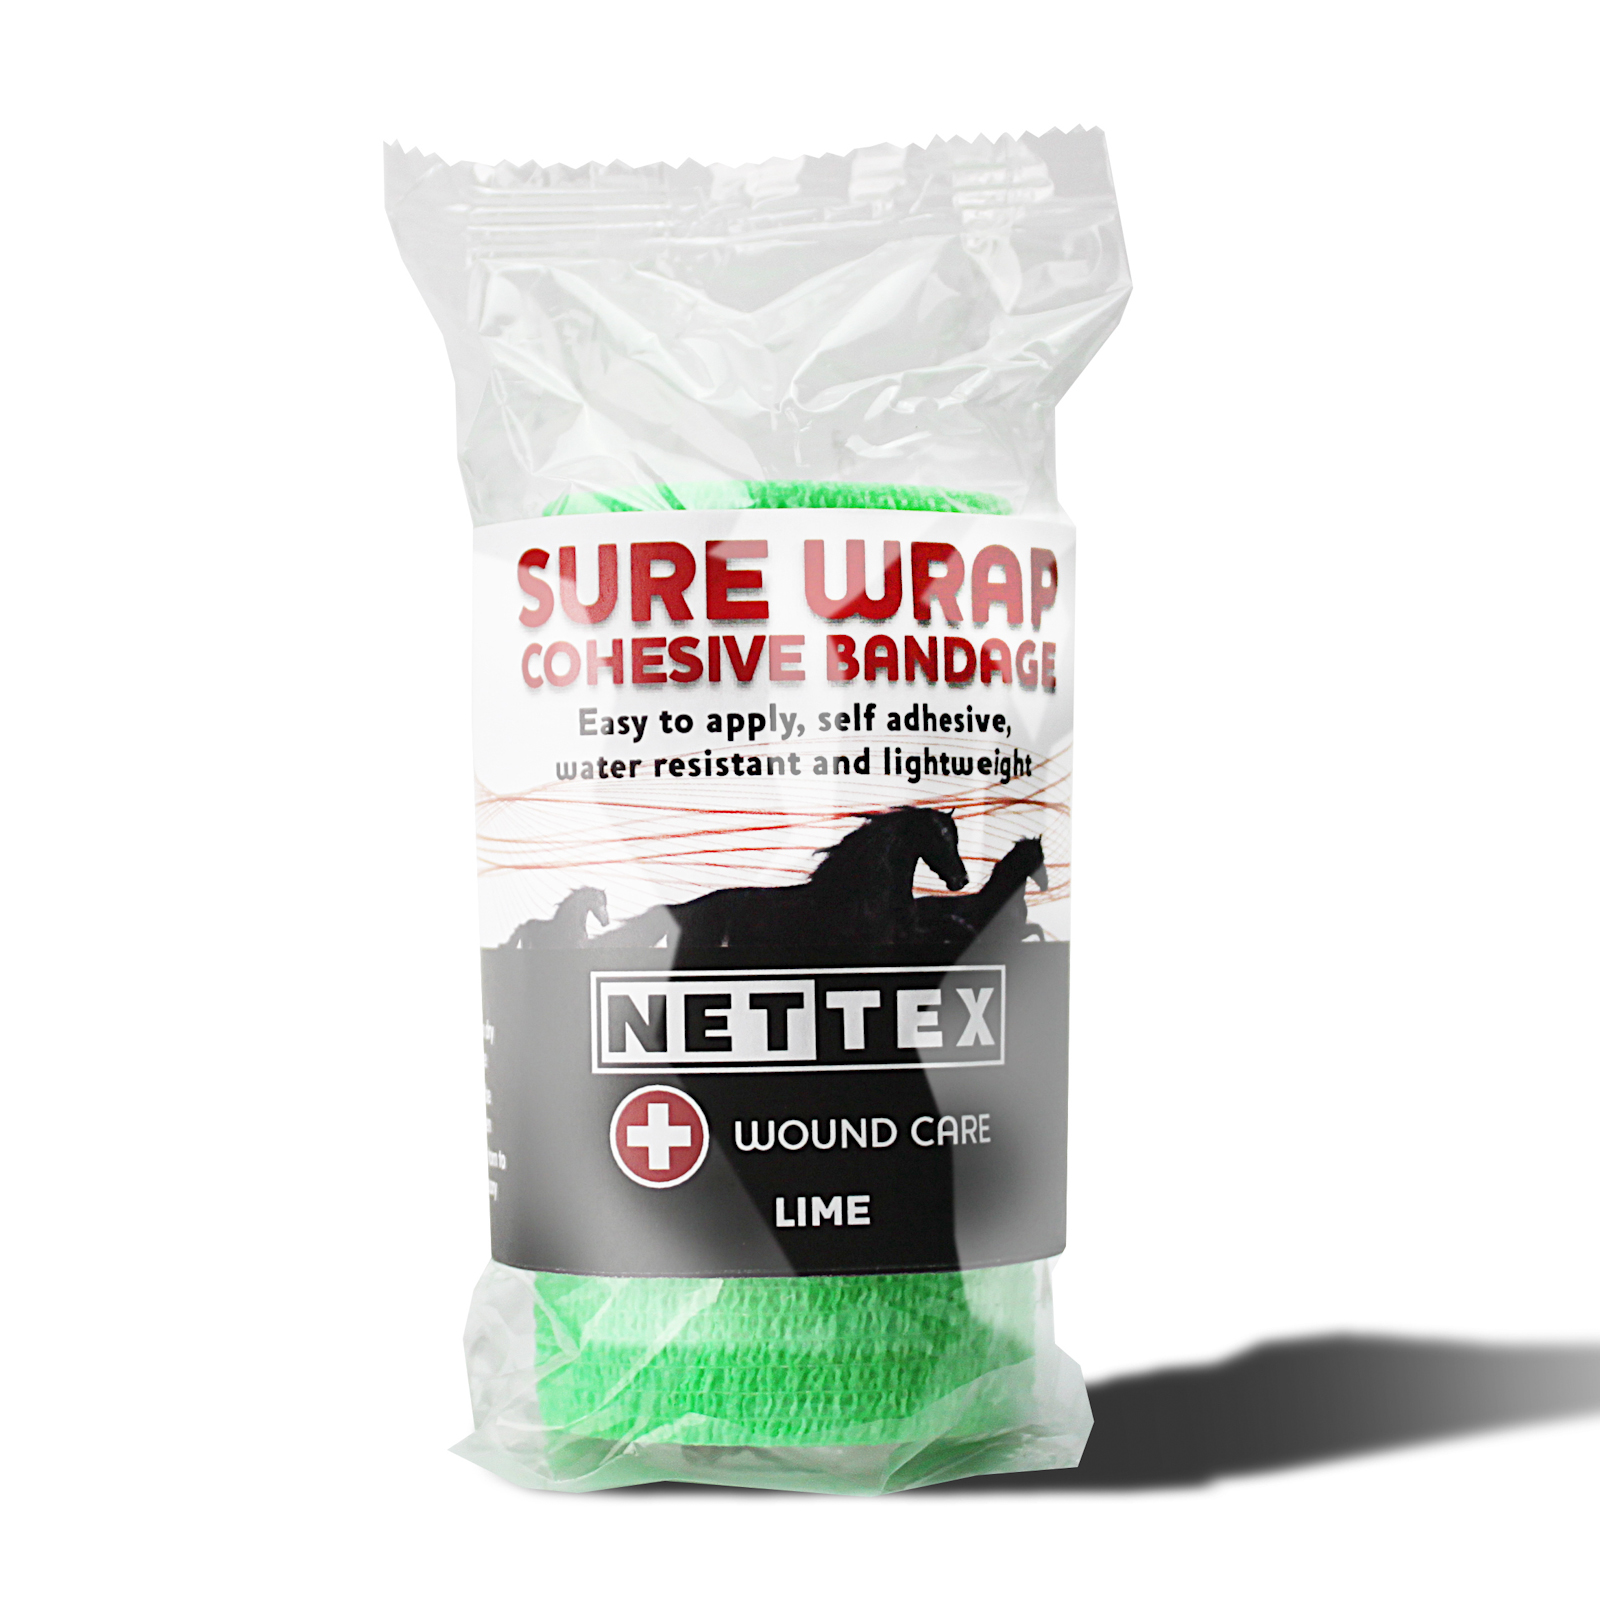 Nettex Sure Wrap Cohesive Bandages